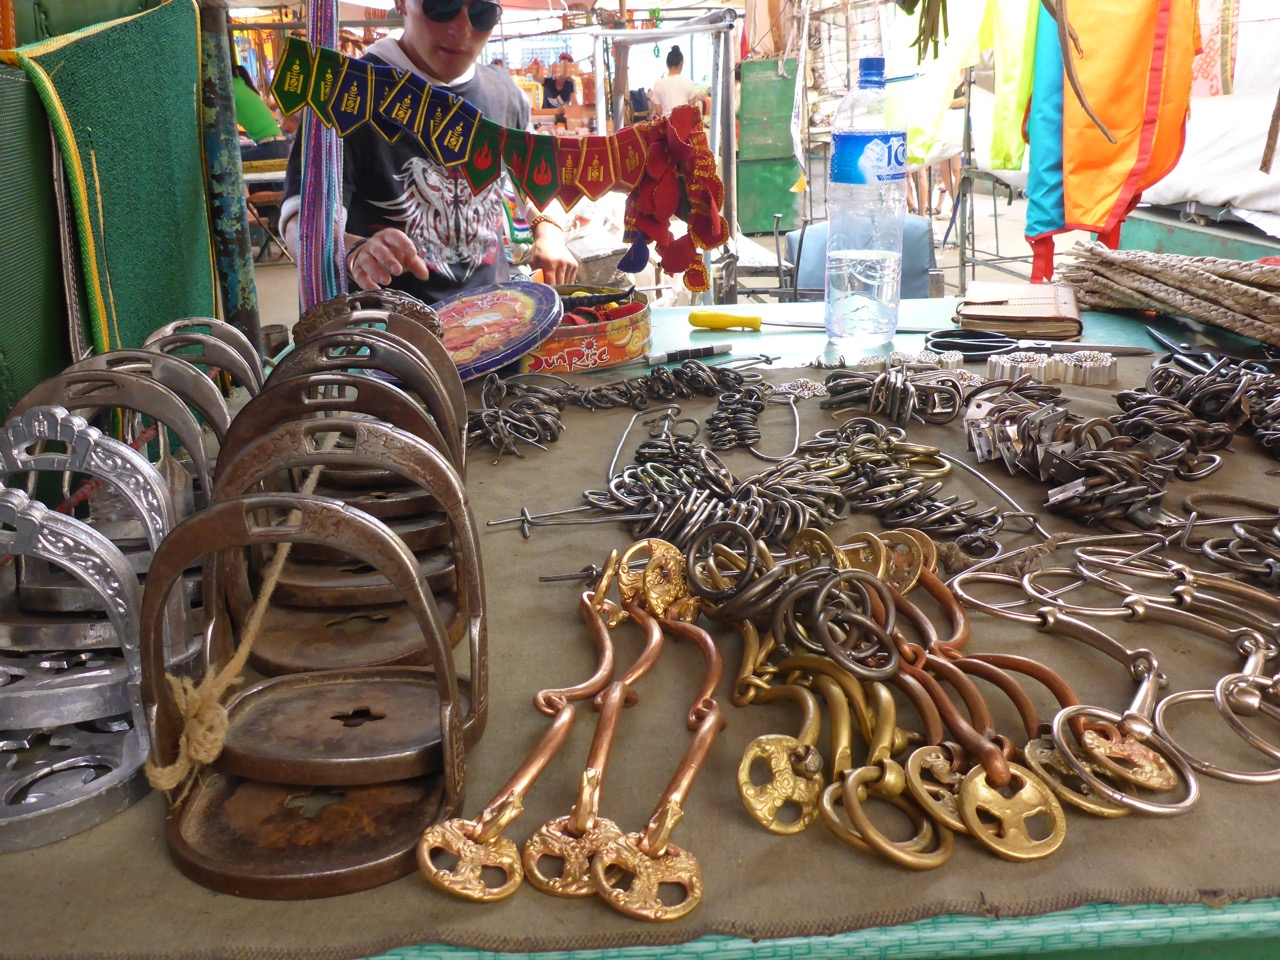 The Black Market in Ulaanbataar - The Agostins